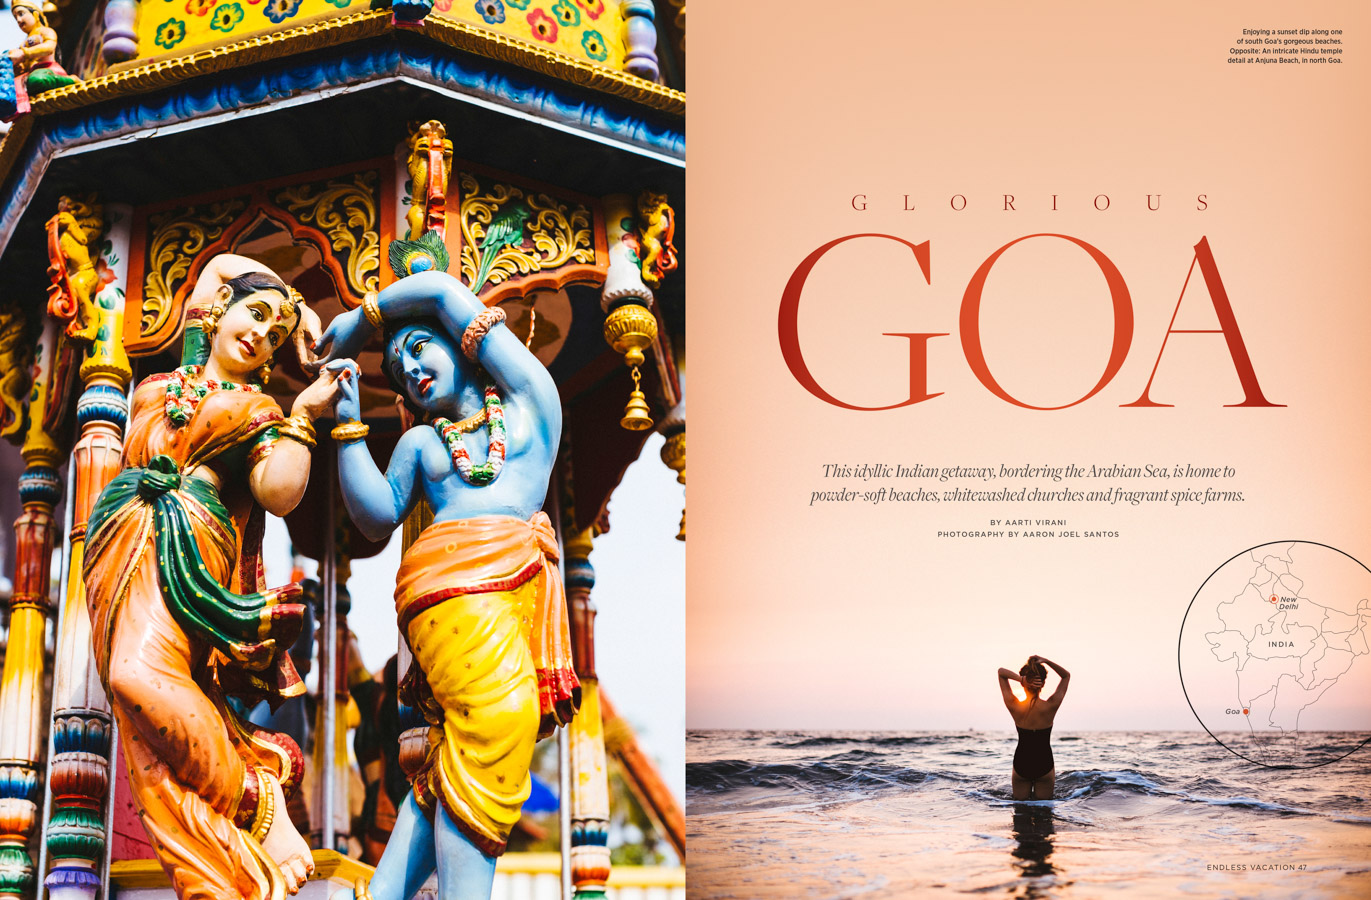 Travel-Goa-India-Tearsheet-1